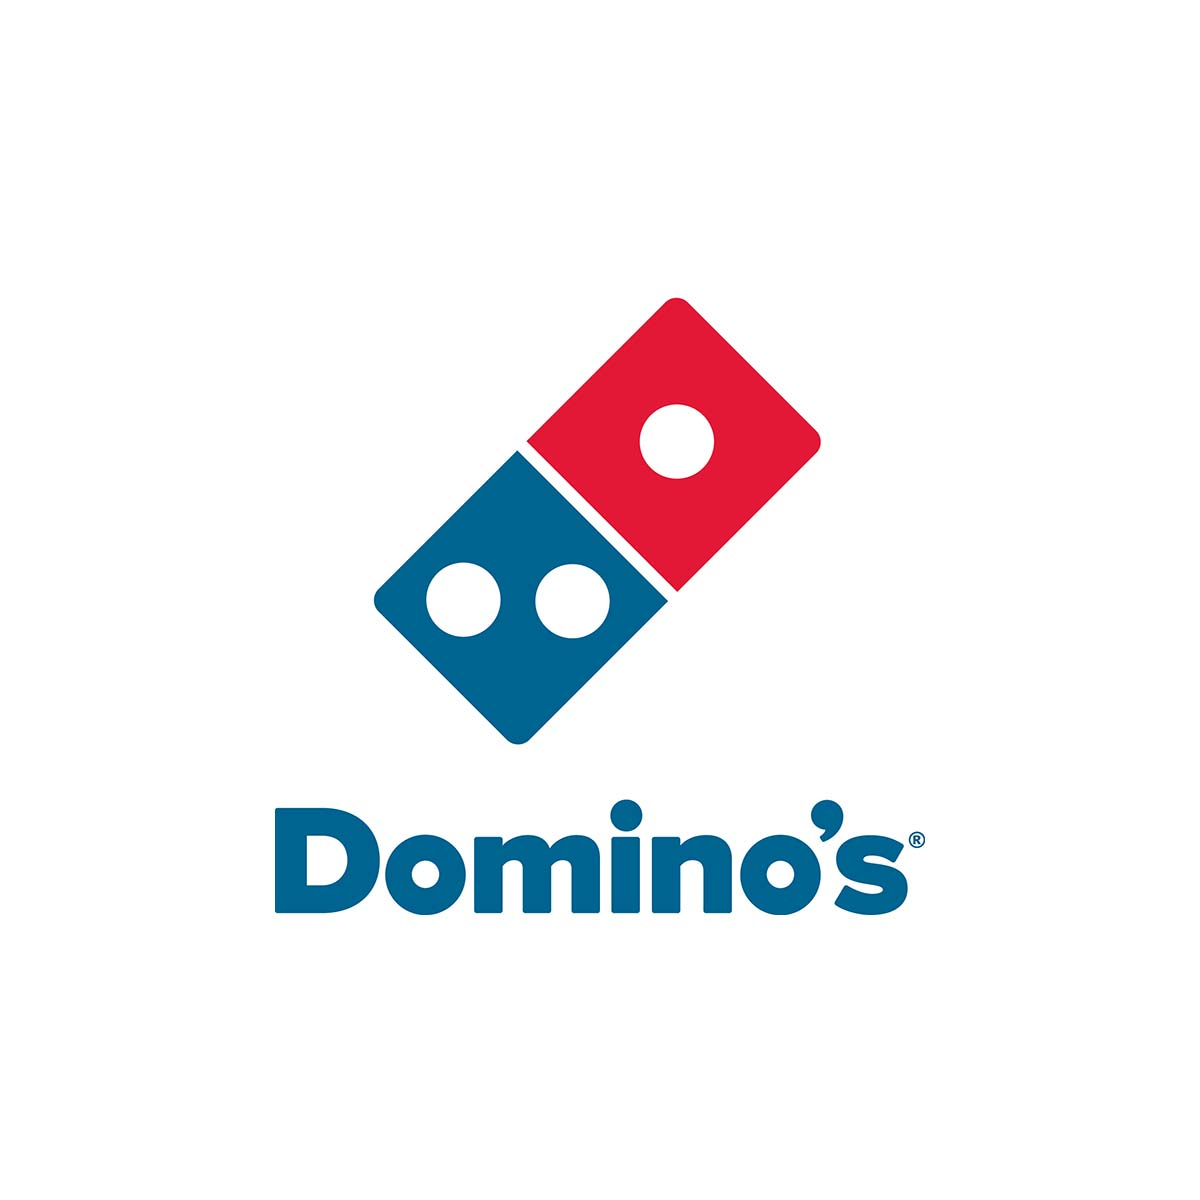 Dominos Customer Service Images